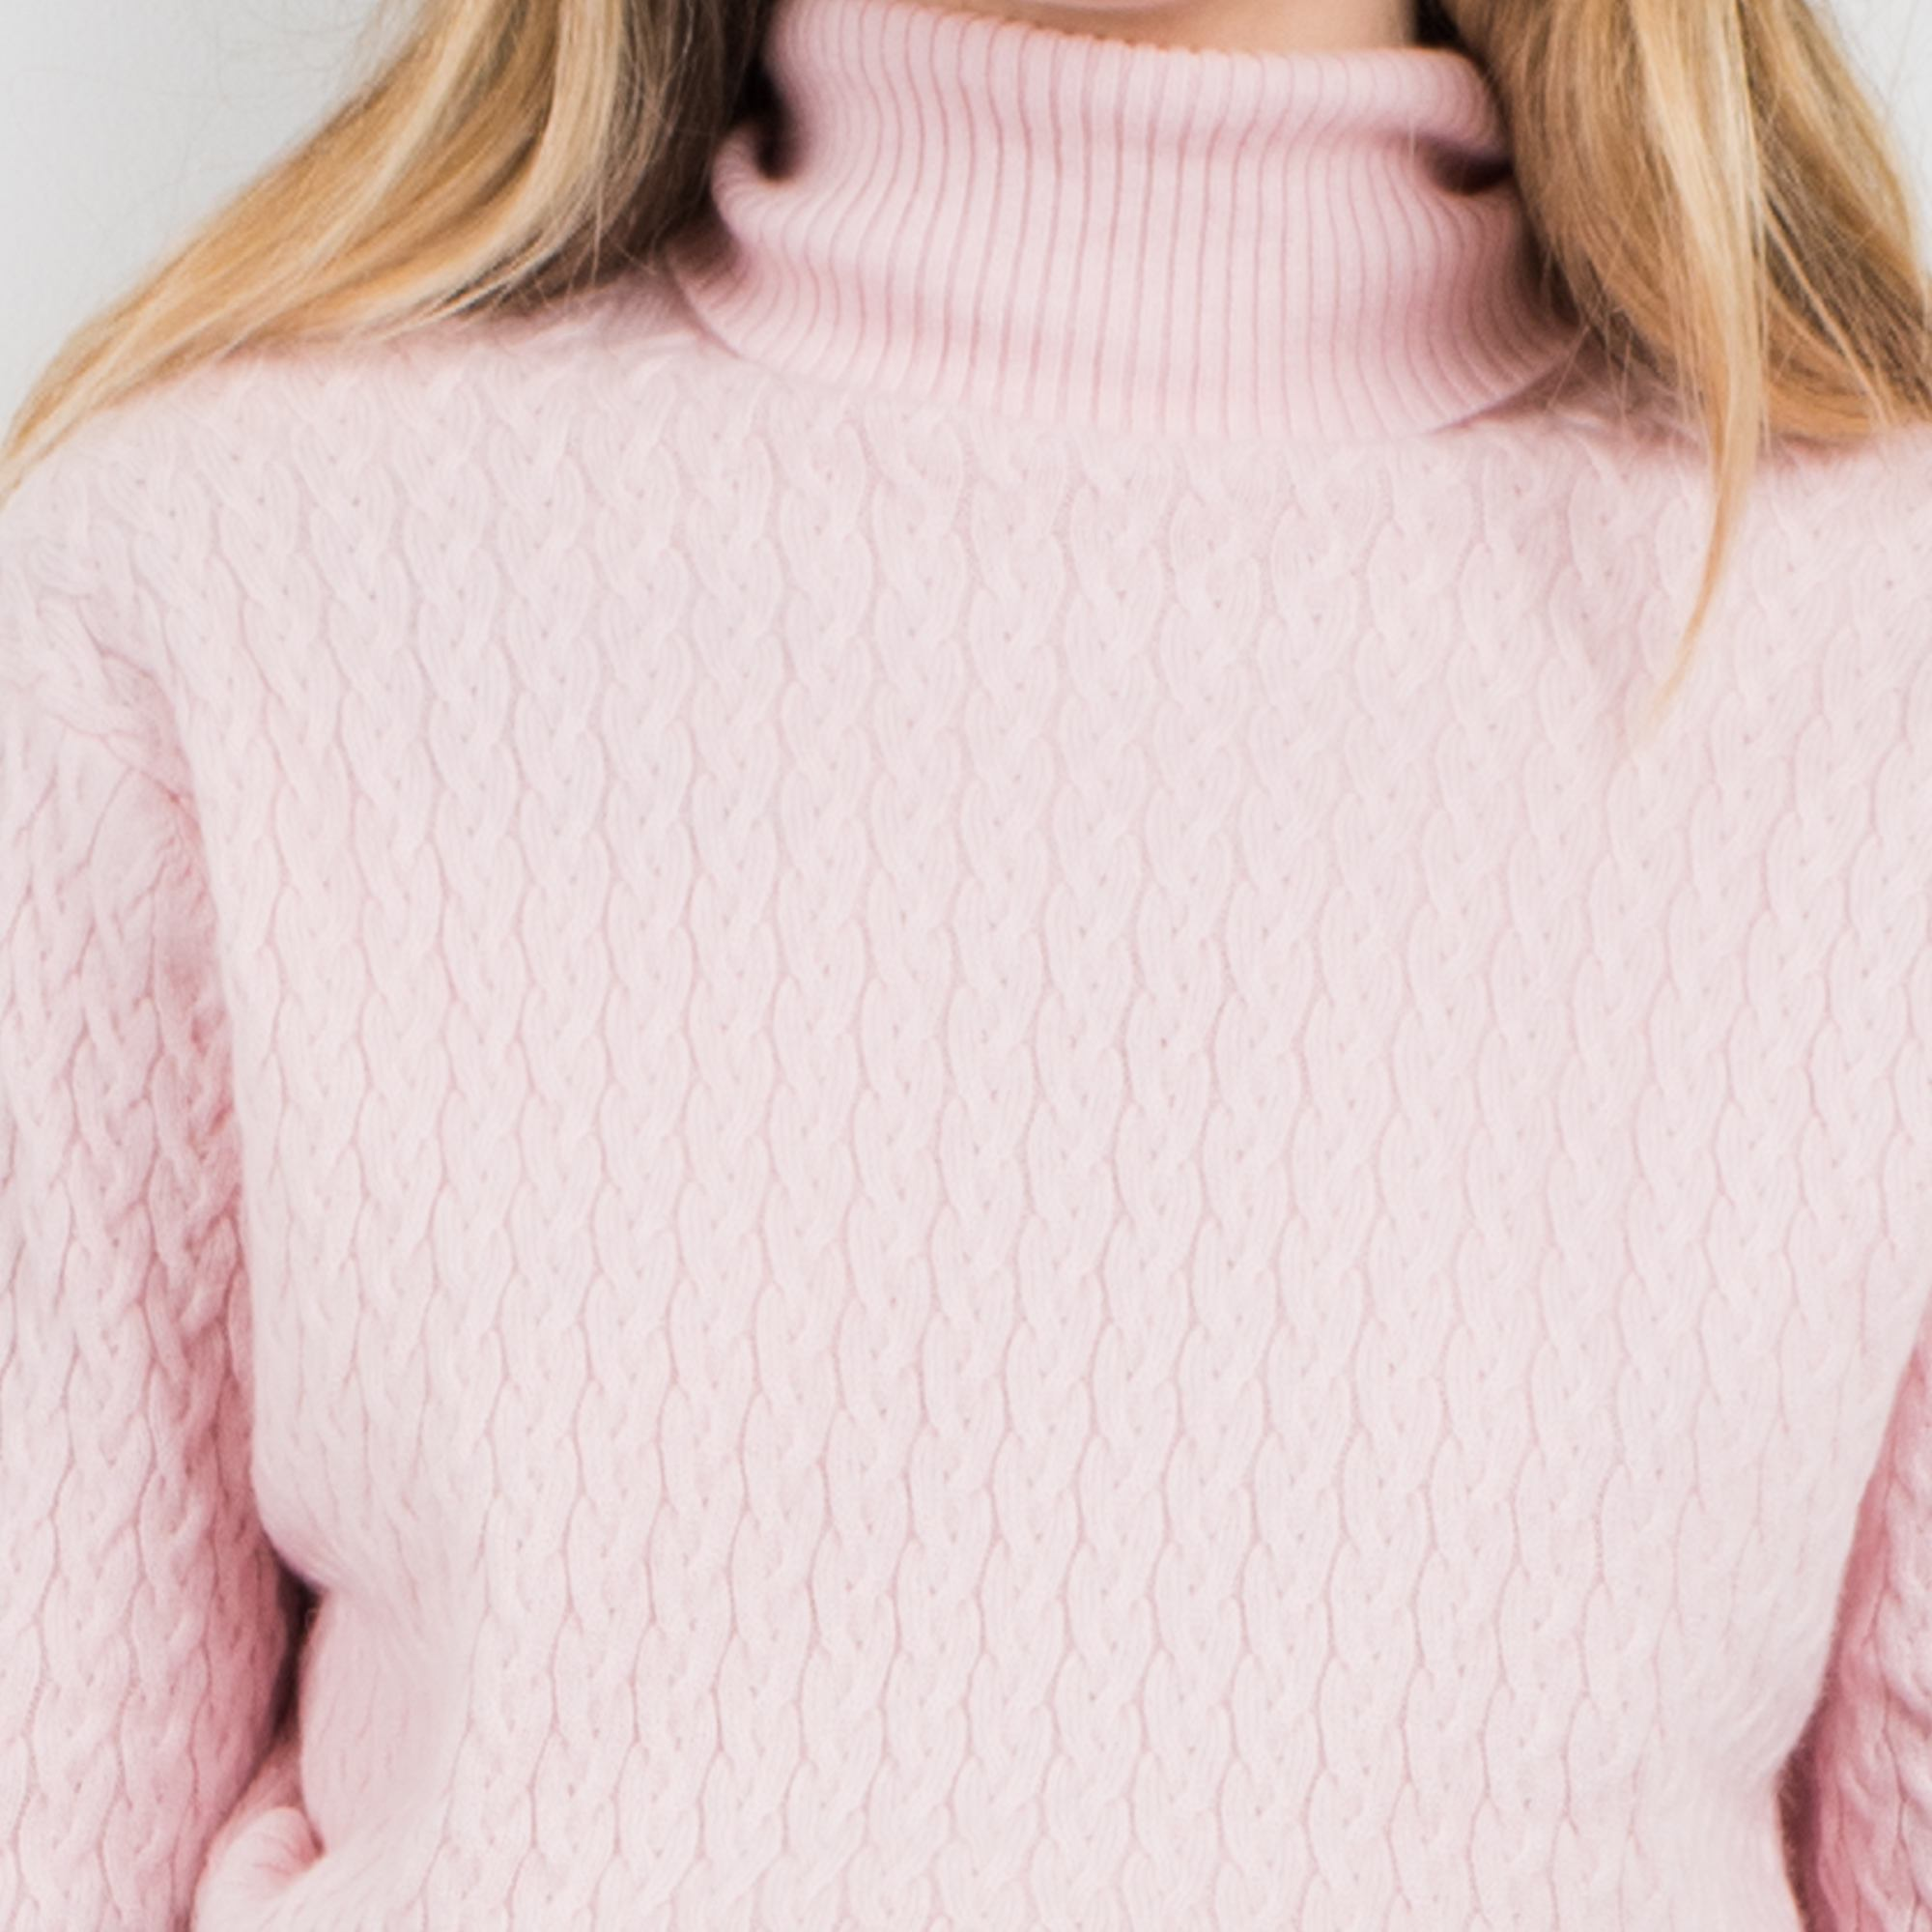 Vintage Light Pink Turtleneck Cable Knit Cashmere Sweater / S - Closed Caption